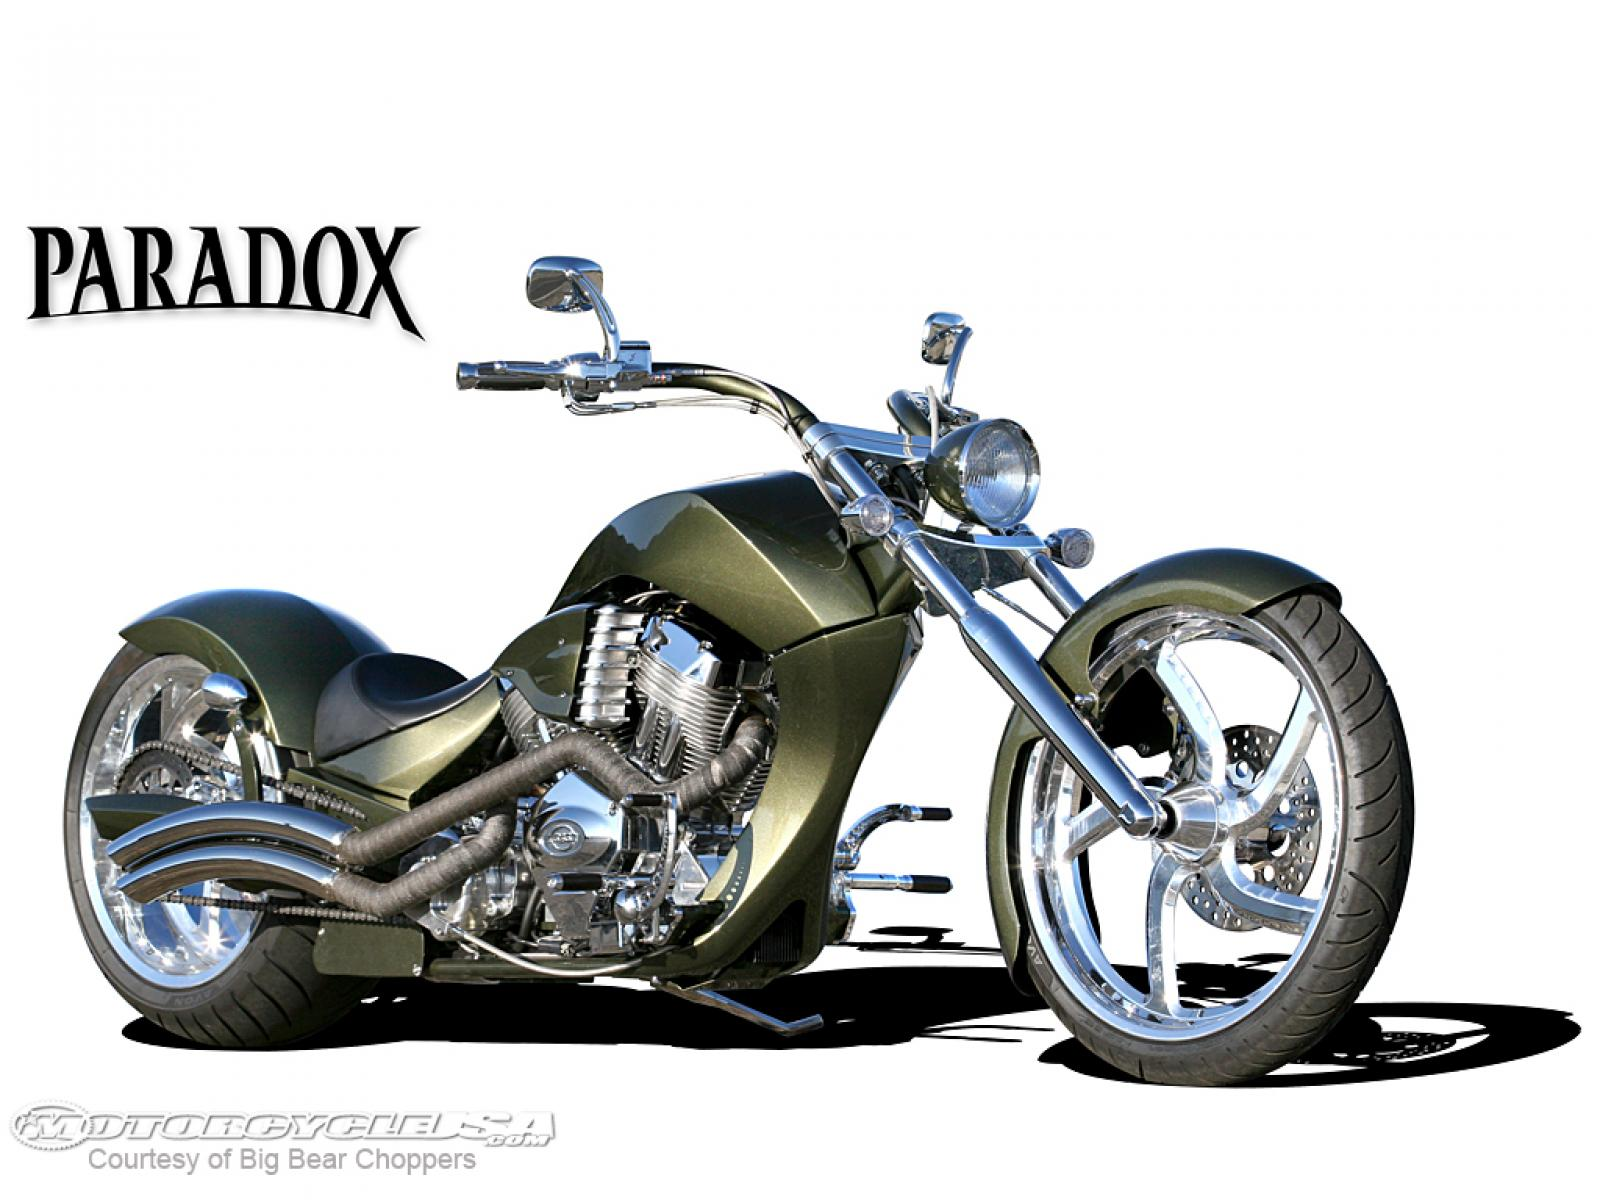 Big Bear Choppers Paradox 114 EFI X-Wedge 2009 images #63461